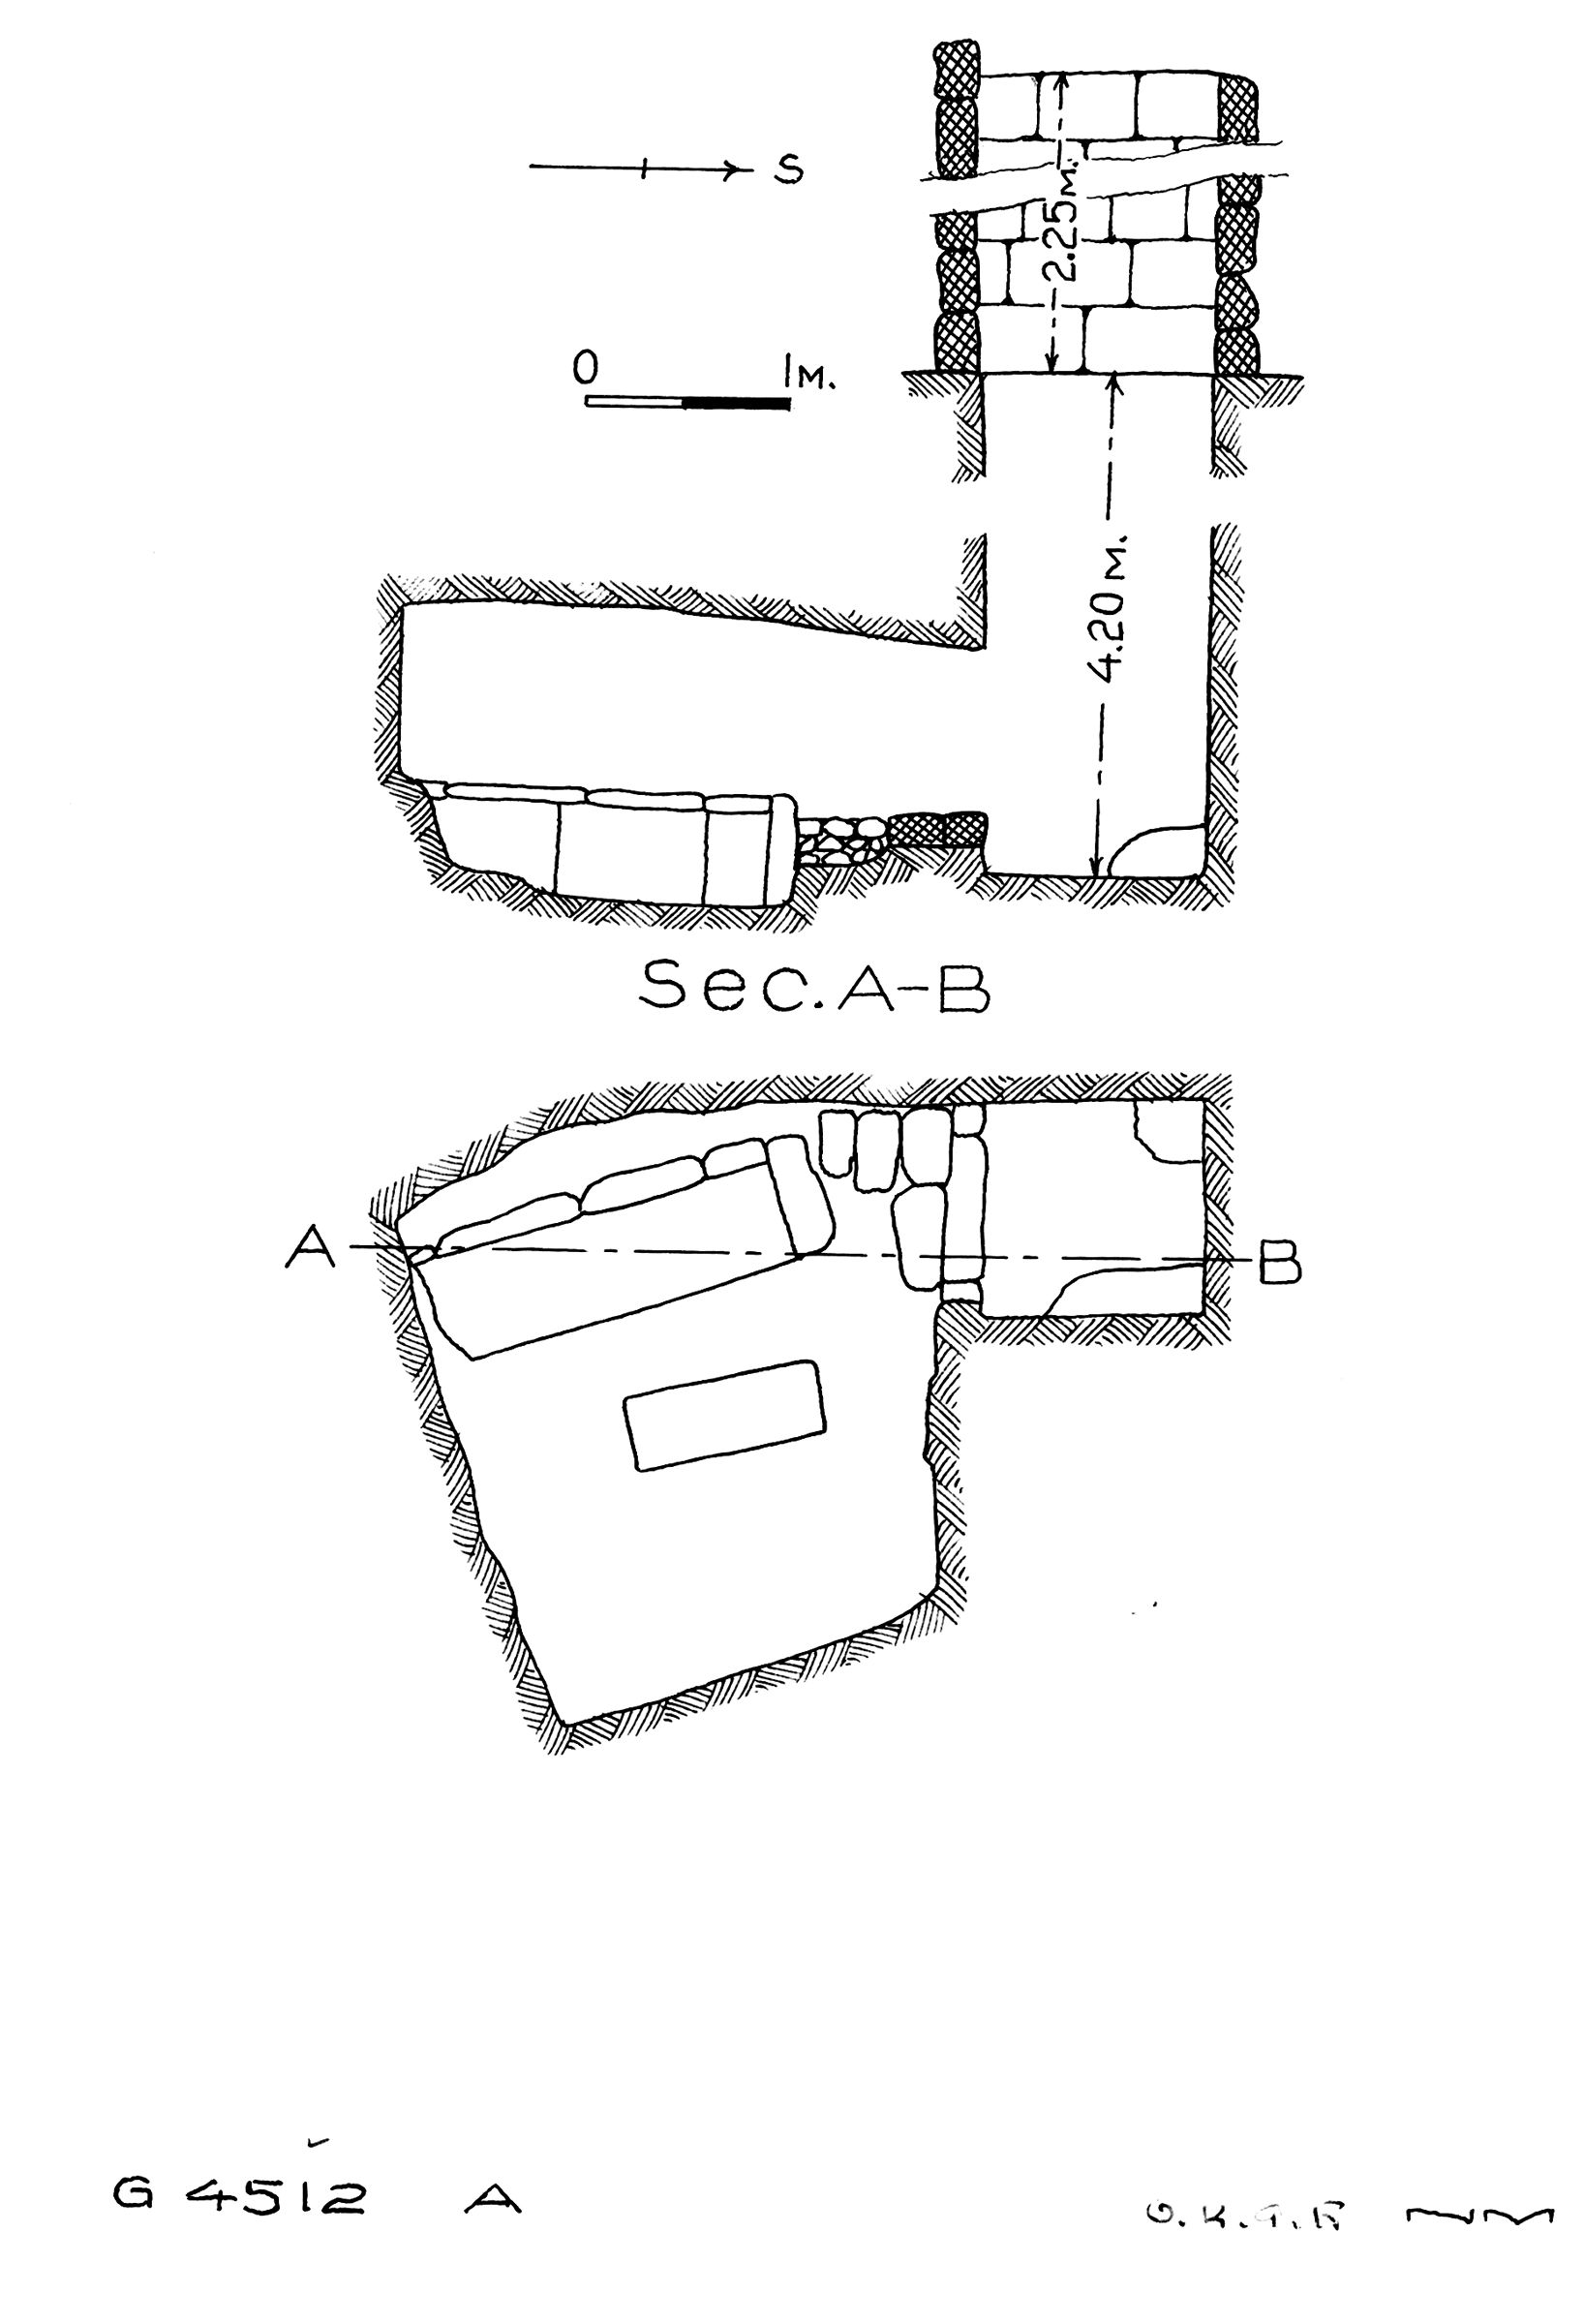 Maps and plans: G 4512, Shaft A